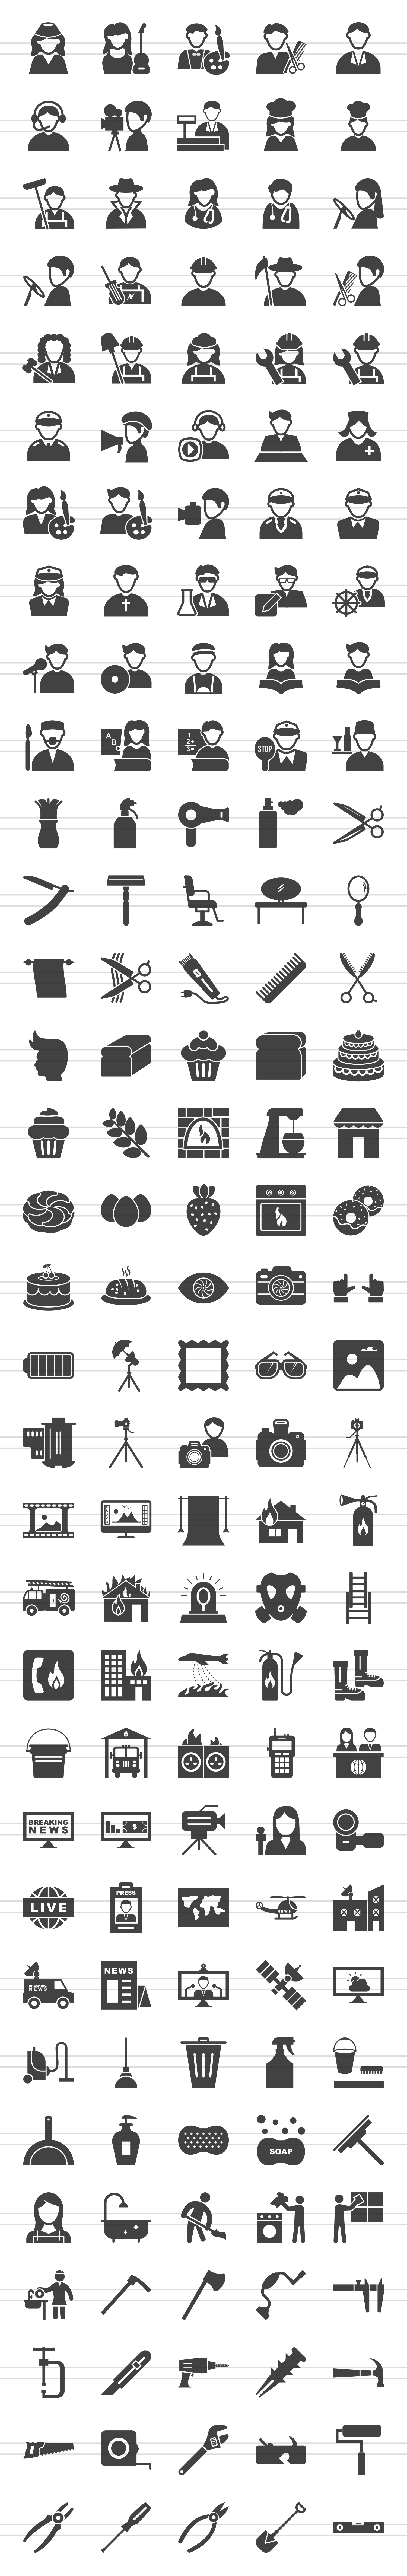 166 Professionals & their tools Glyph Icons example image 2